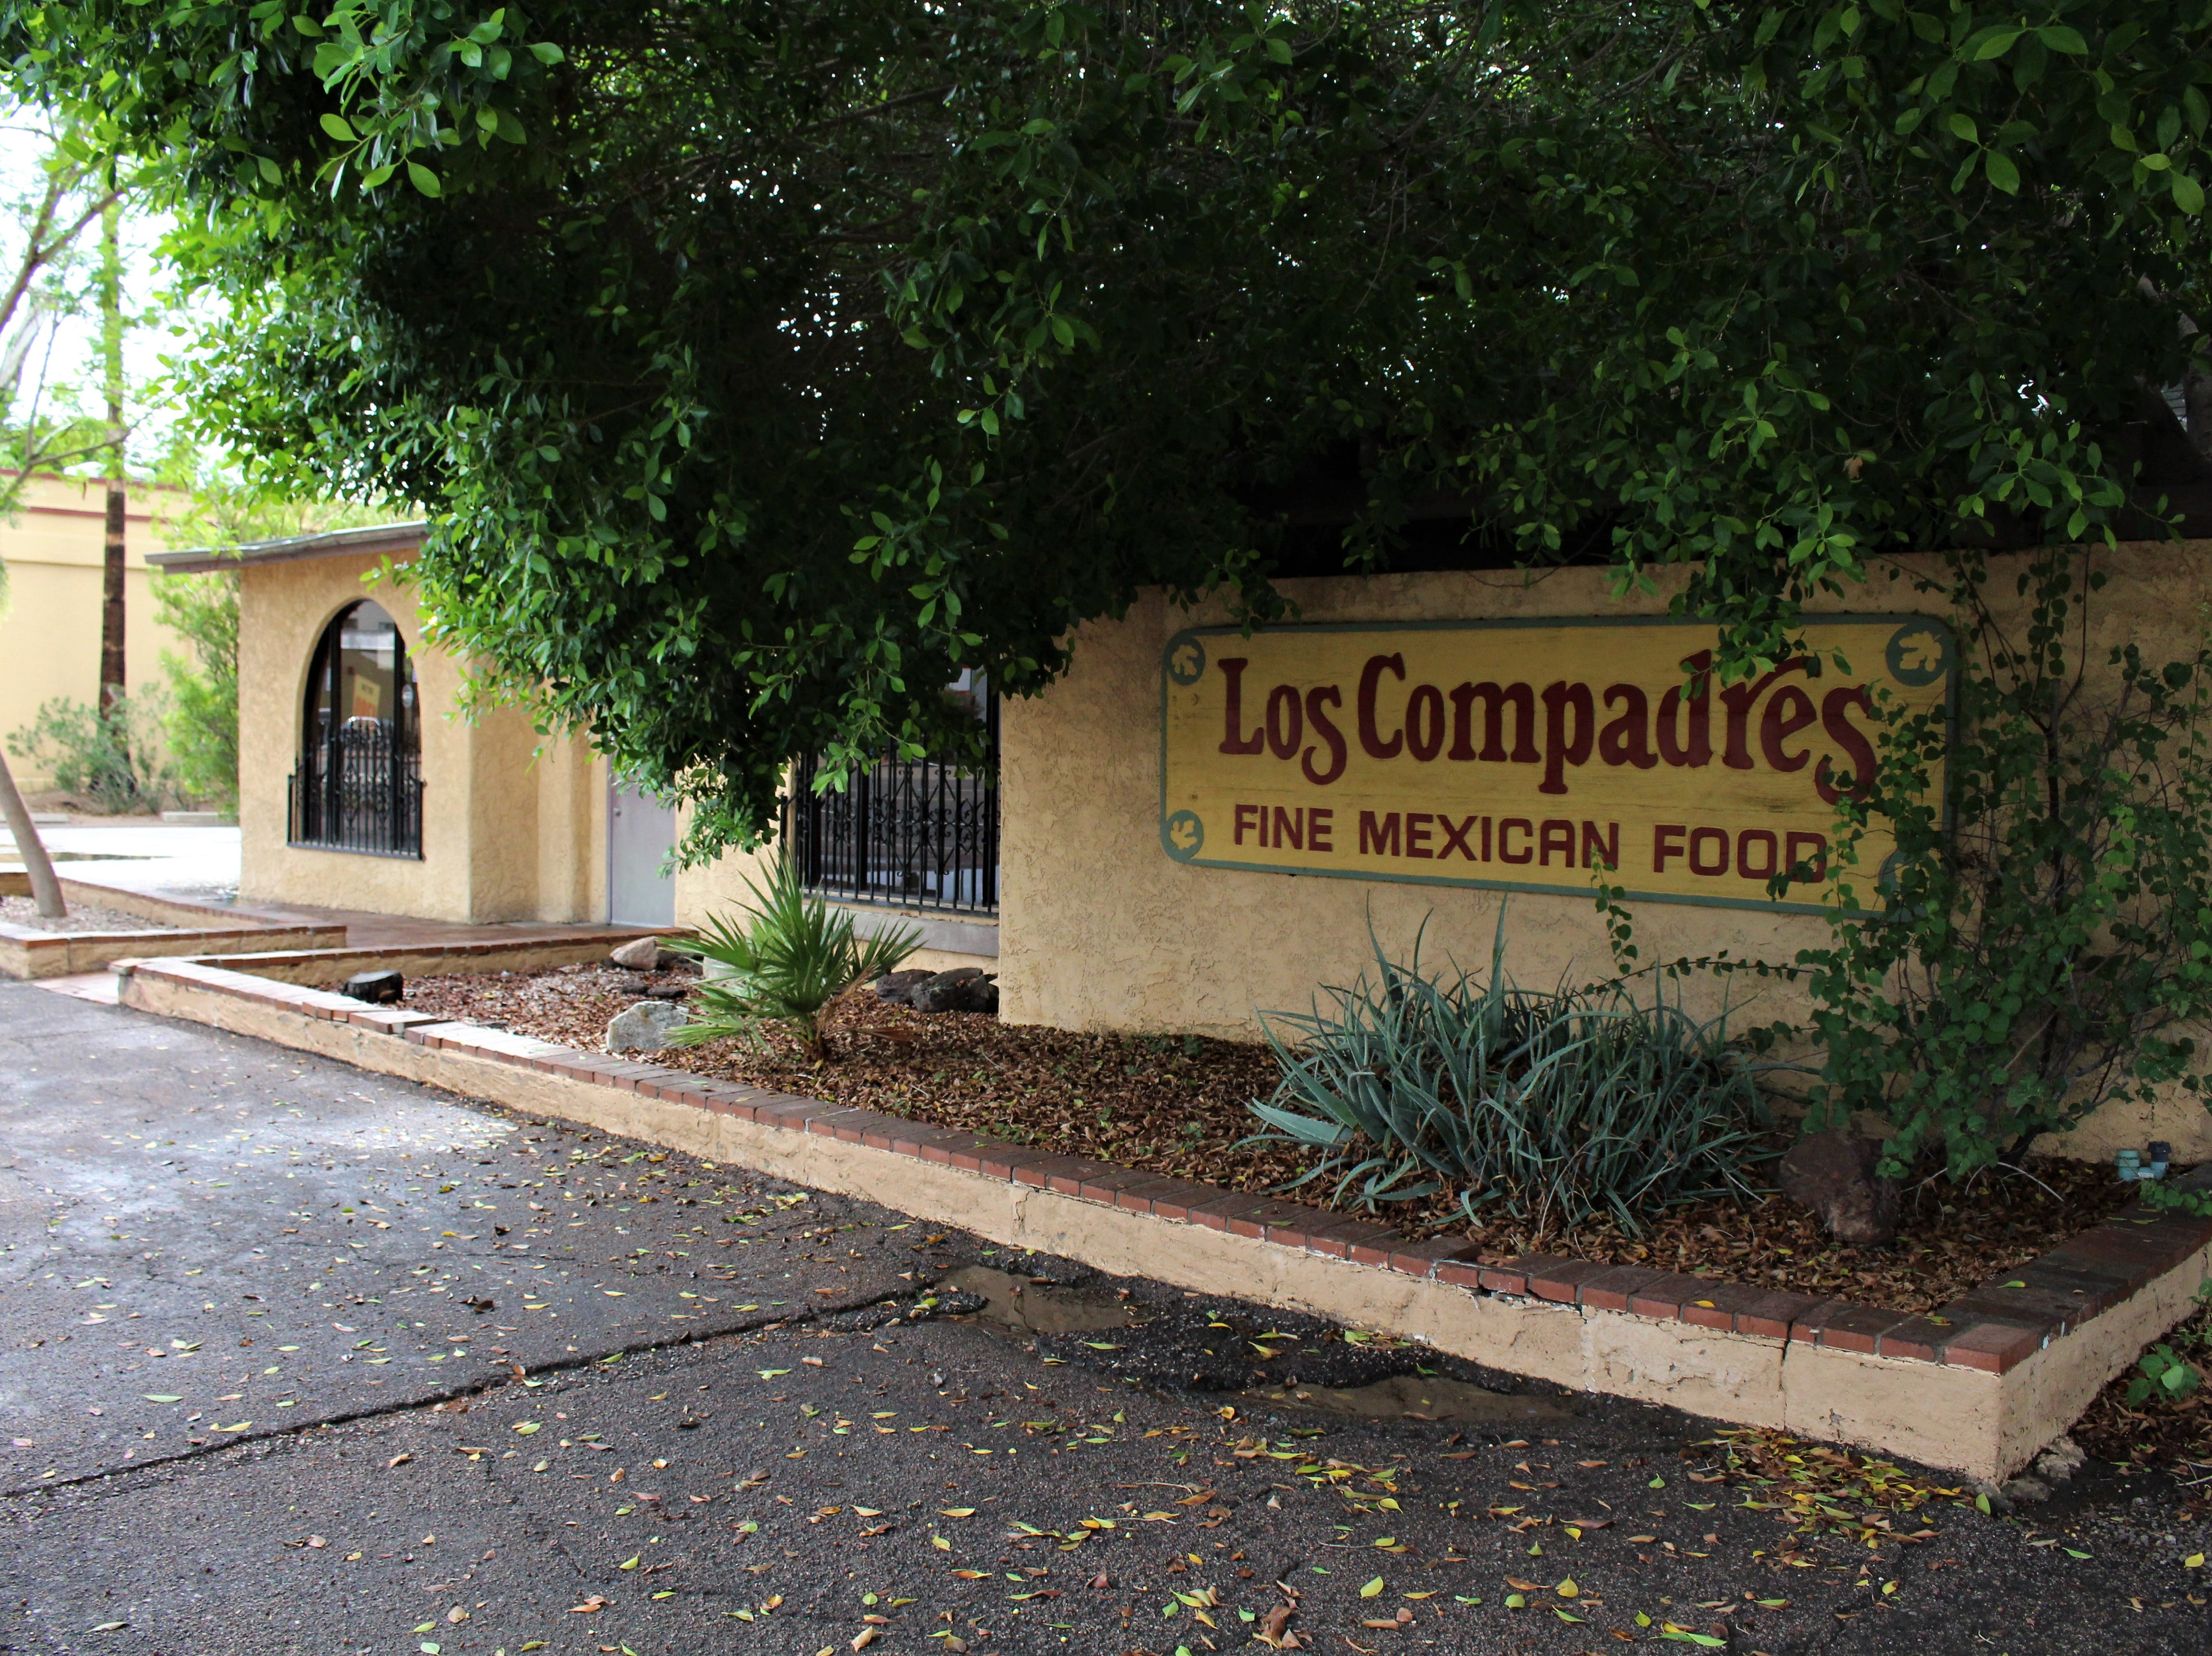 Los Compadres Mexican restaurant, which has been open on Seventh Avenue in the Melrose neighborhood for 60 years, will close before the end of October.